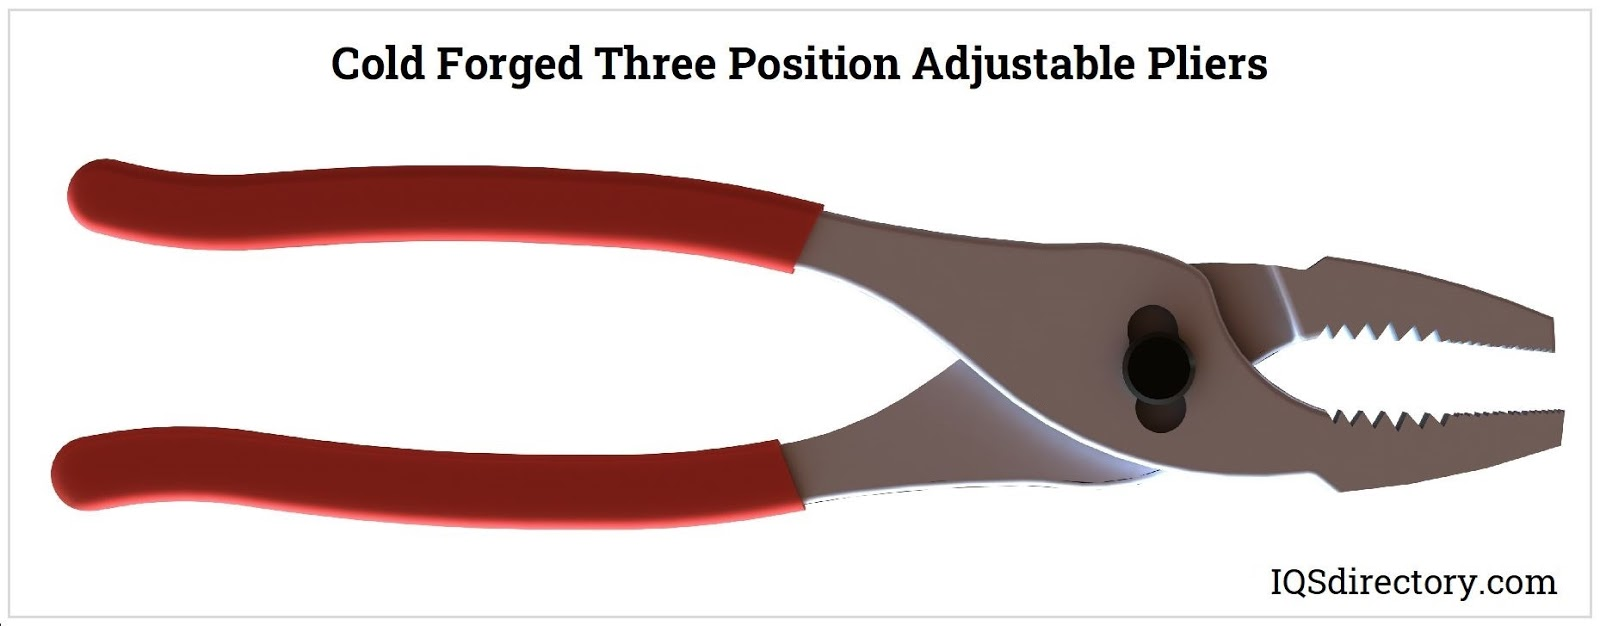 Cold Forged Three Position Adjustable Pliers